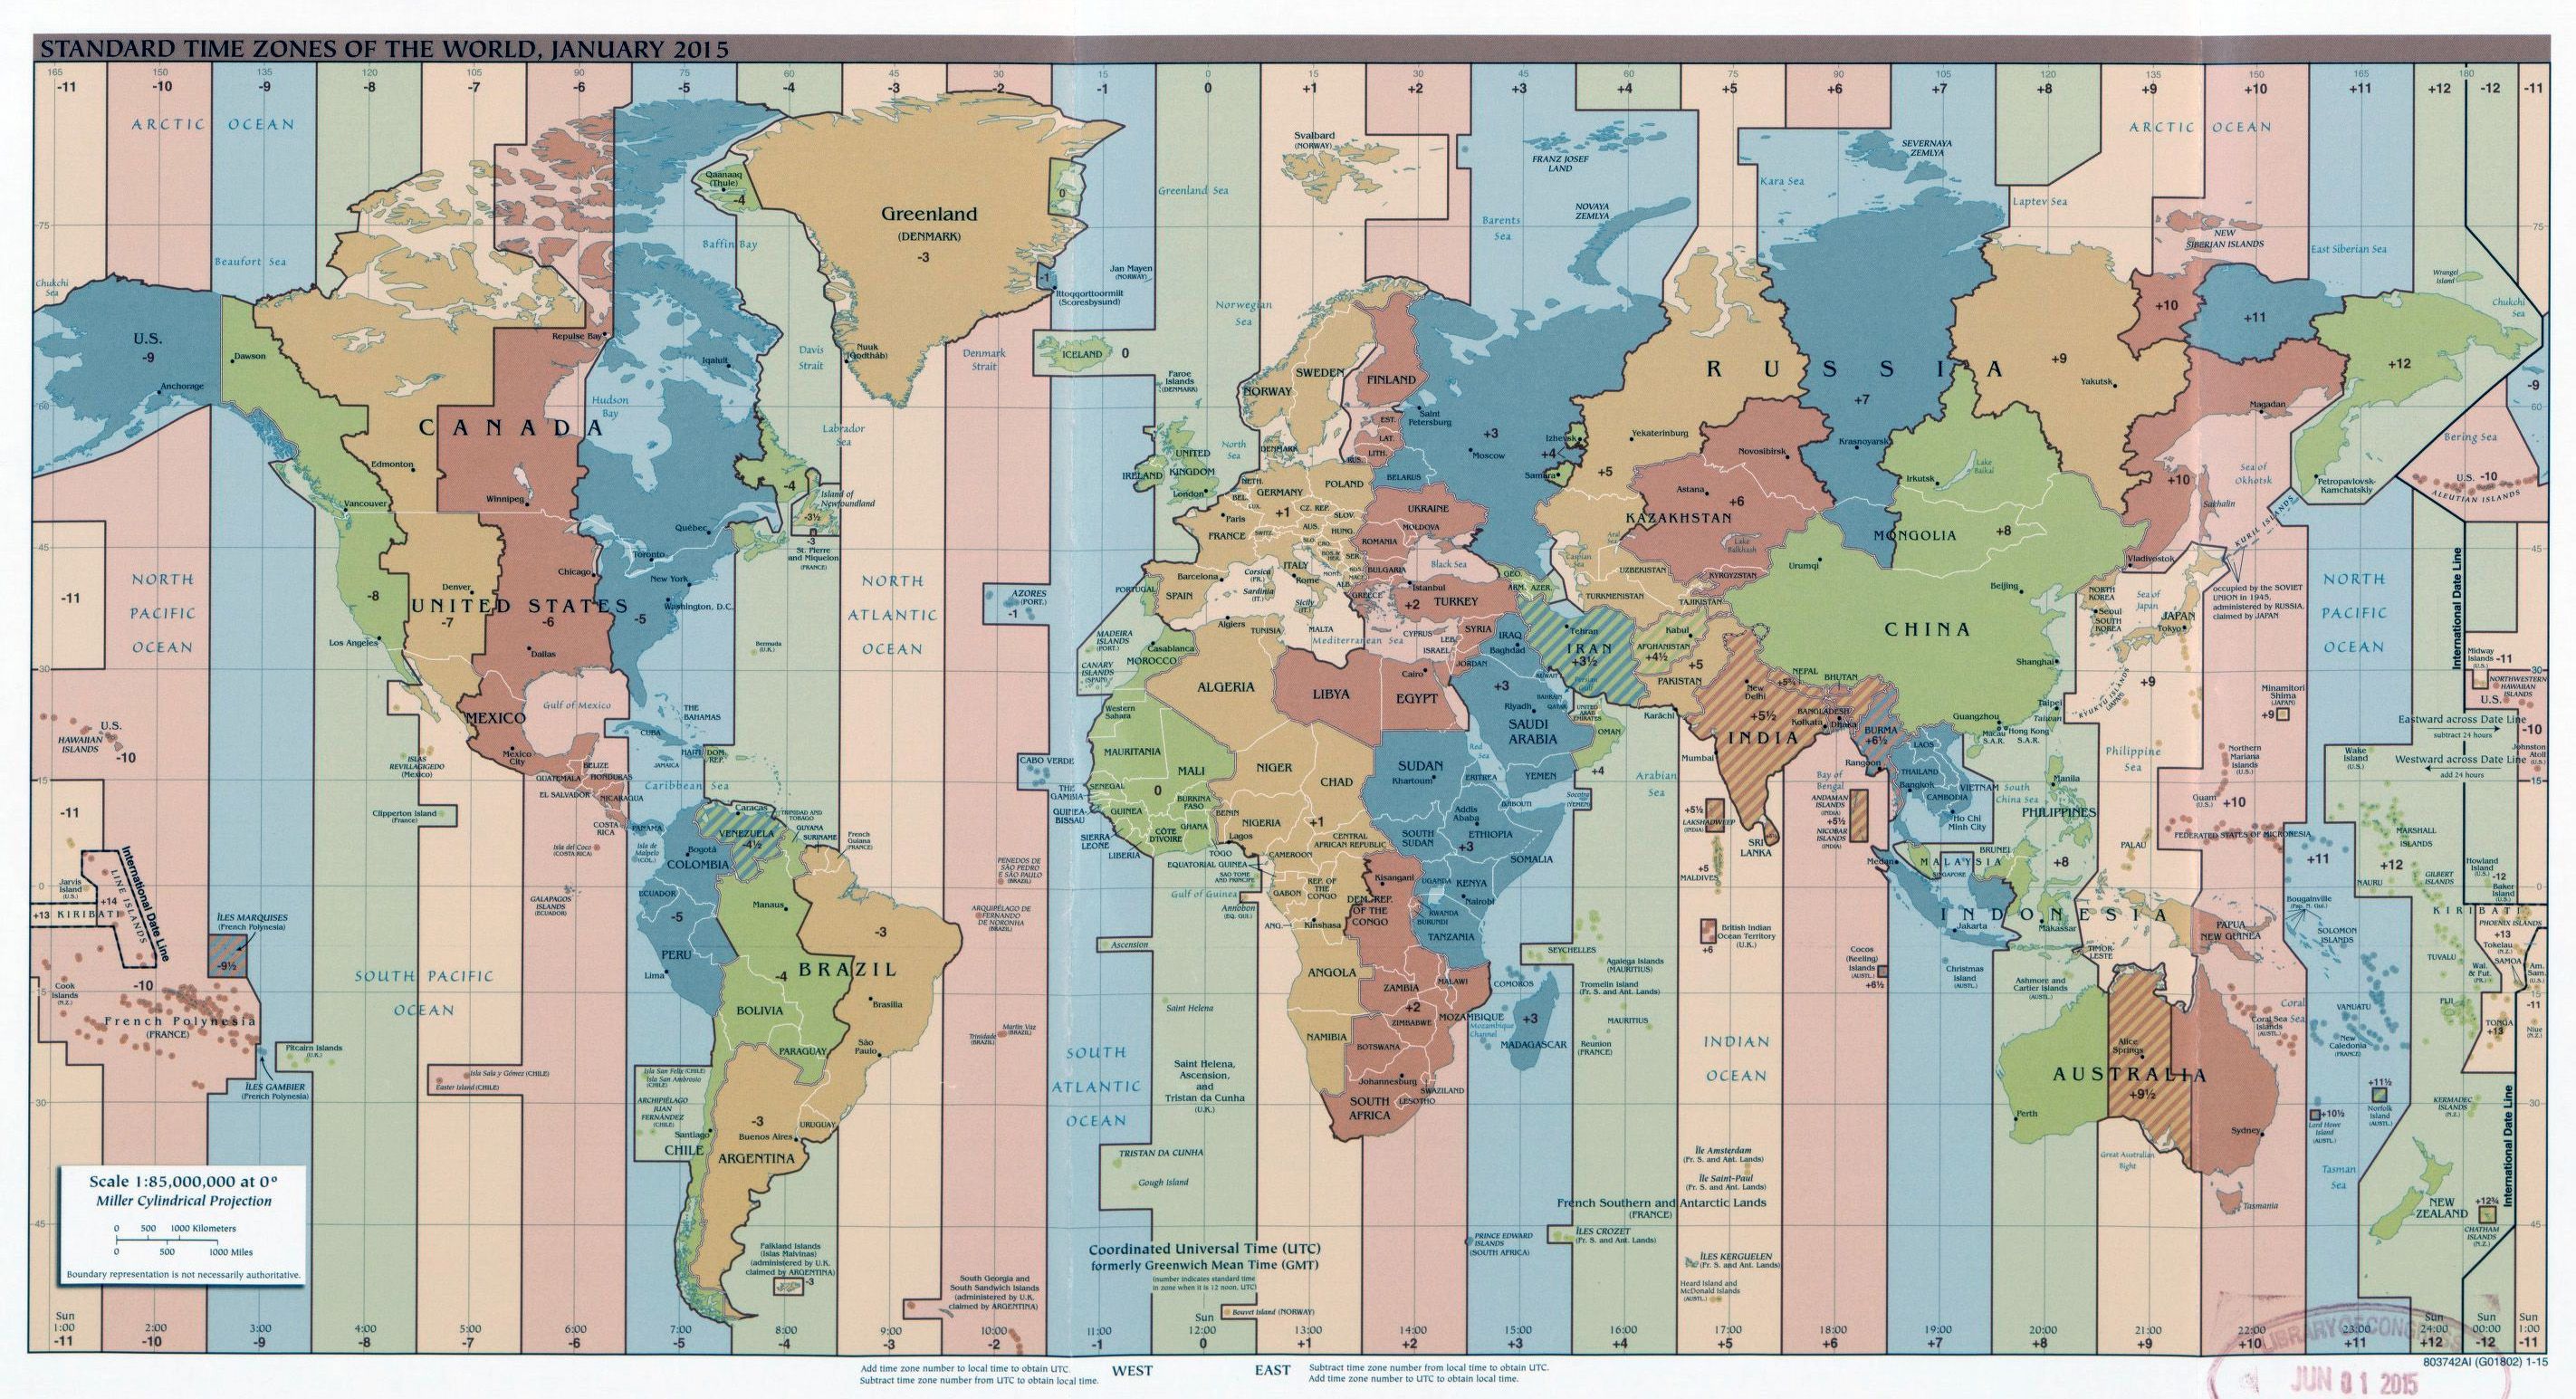 Large world time zone map exploration pinterest time zone large world time zone map exploration pinterest time zone map time zones and earth science gumiabroncs Gallery